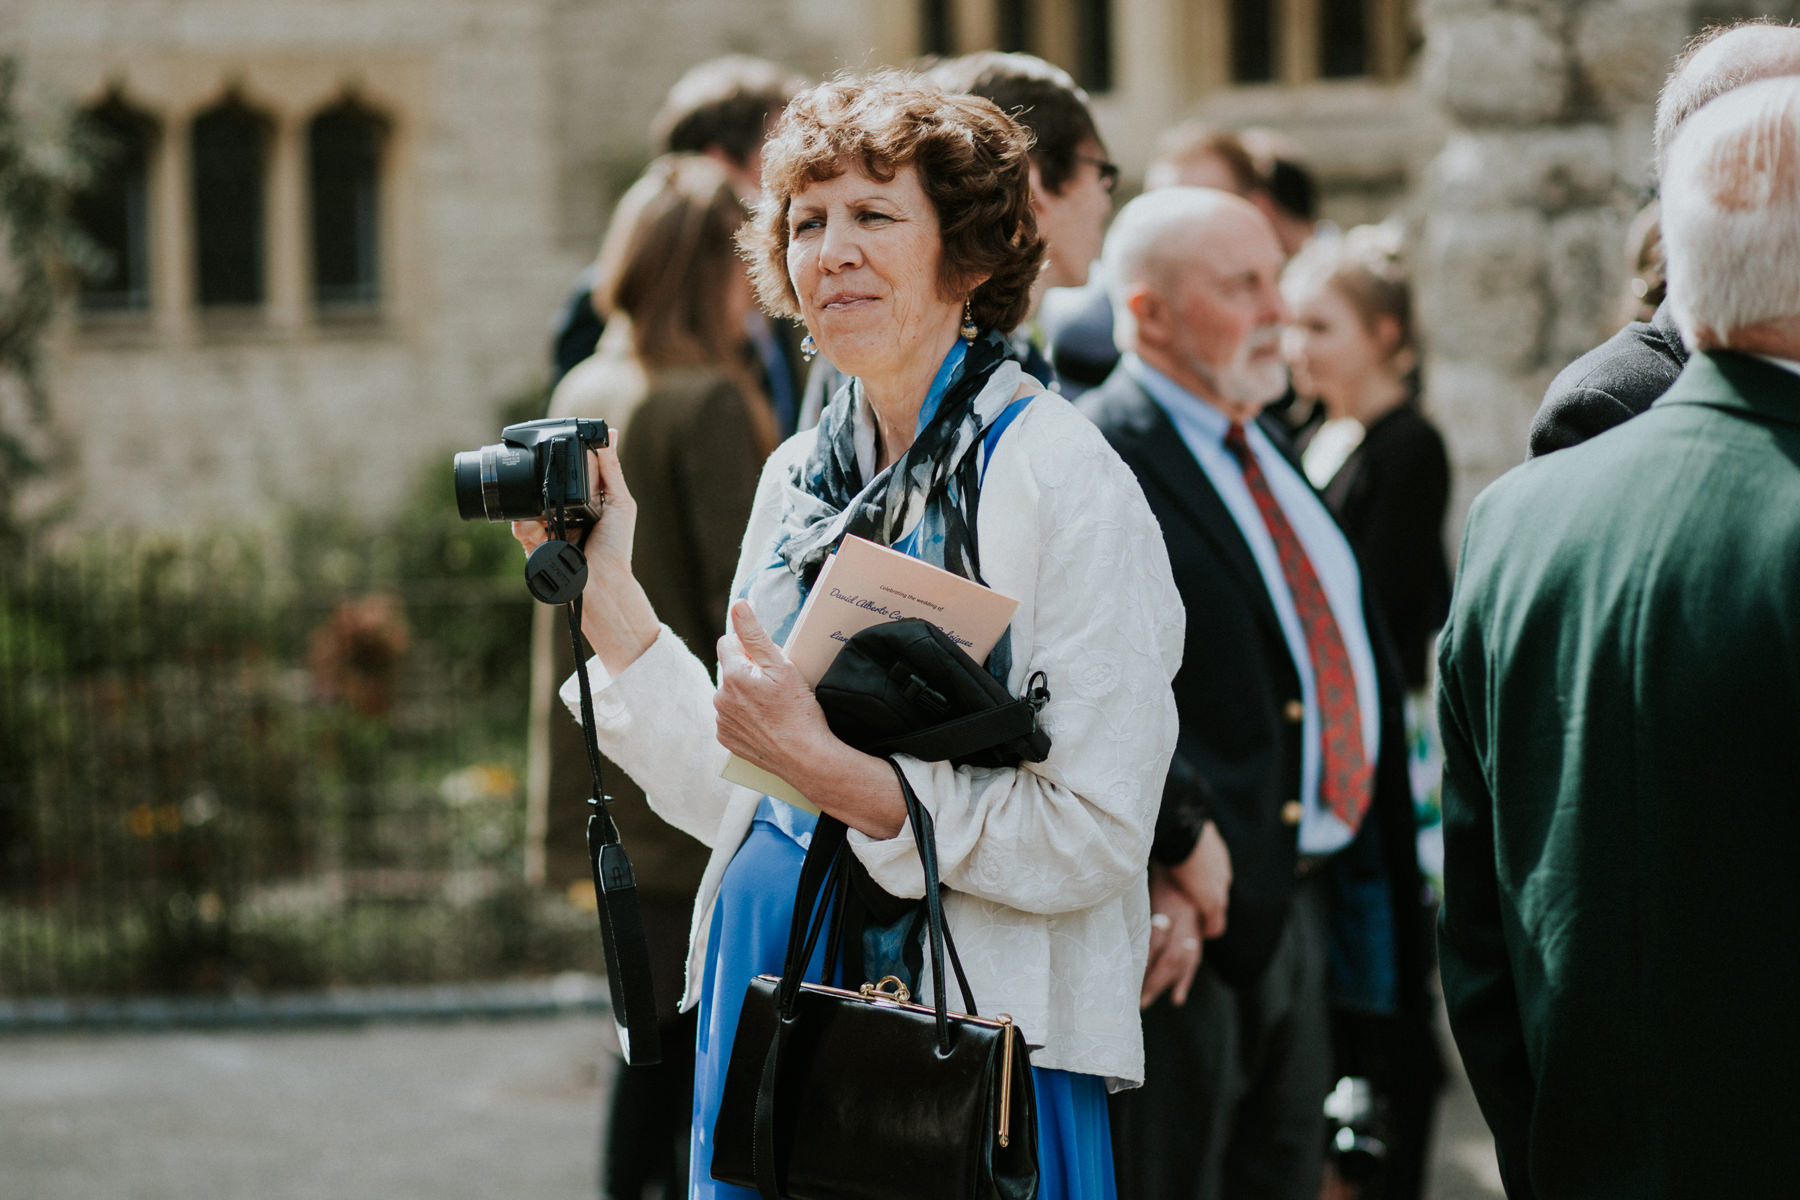 LD-361-guest-candids-outside-St-Marys-Clapham-London-reportage-wedding.jpg